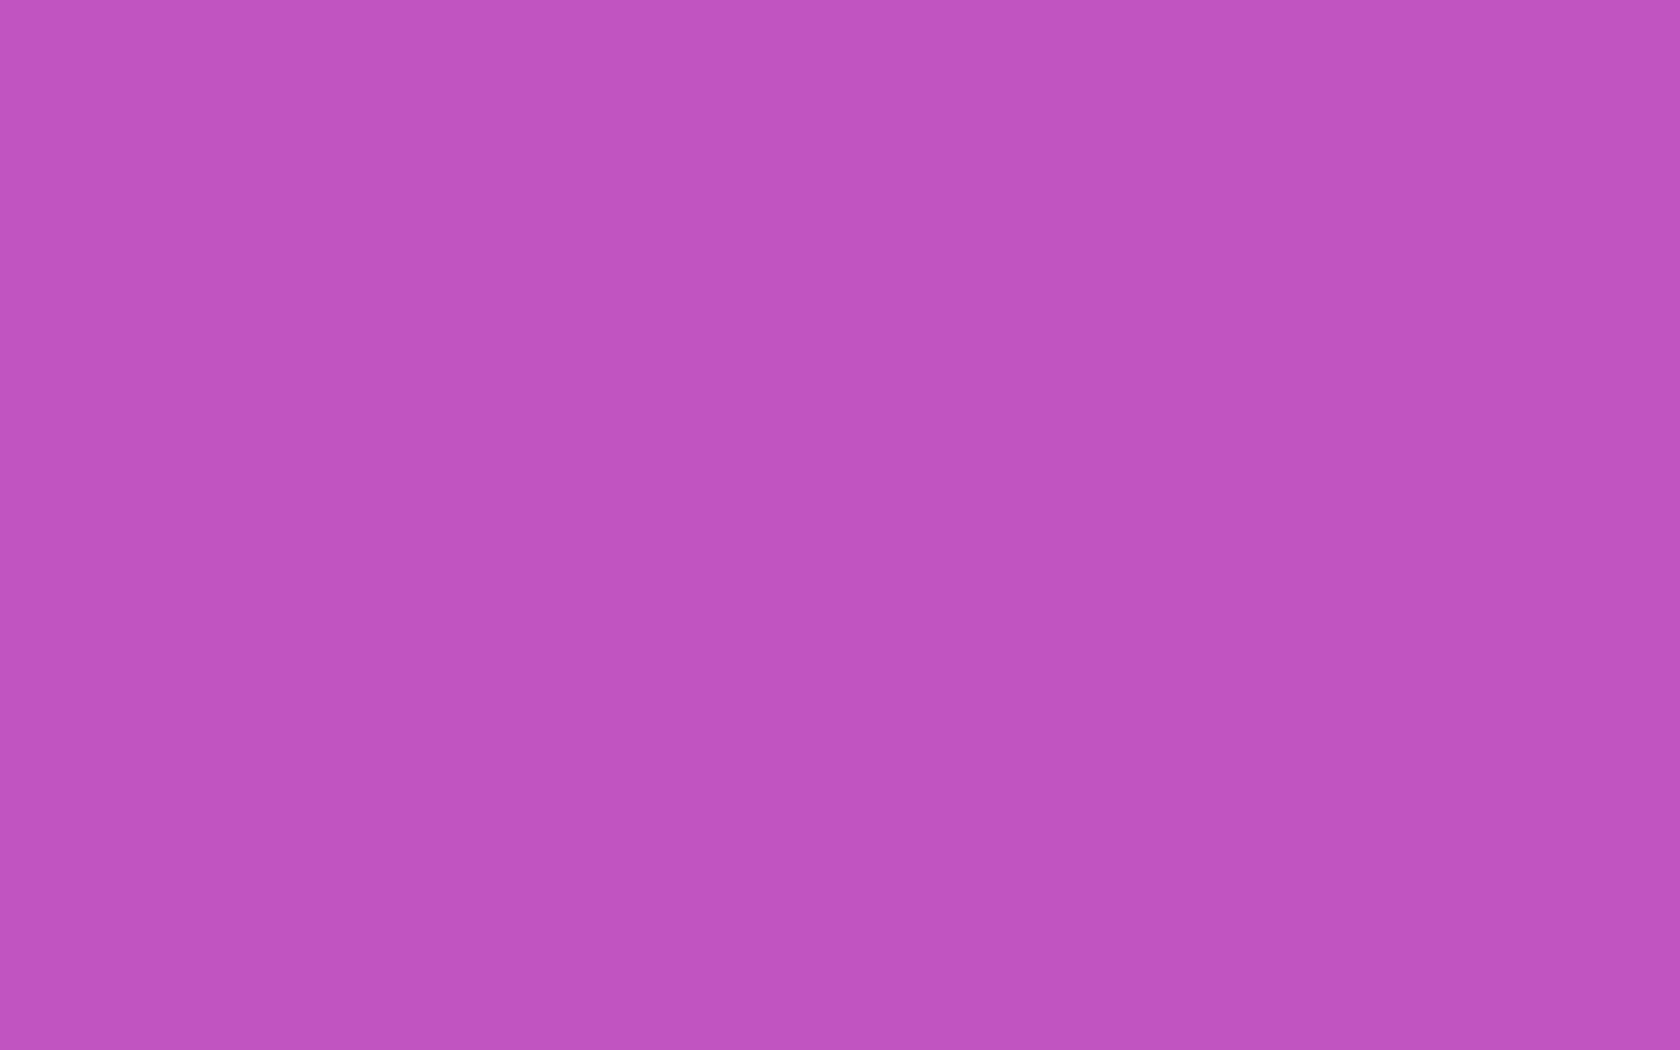 1680x1050 Fuchsia Crayola Solid Color Background